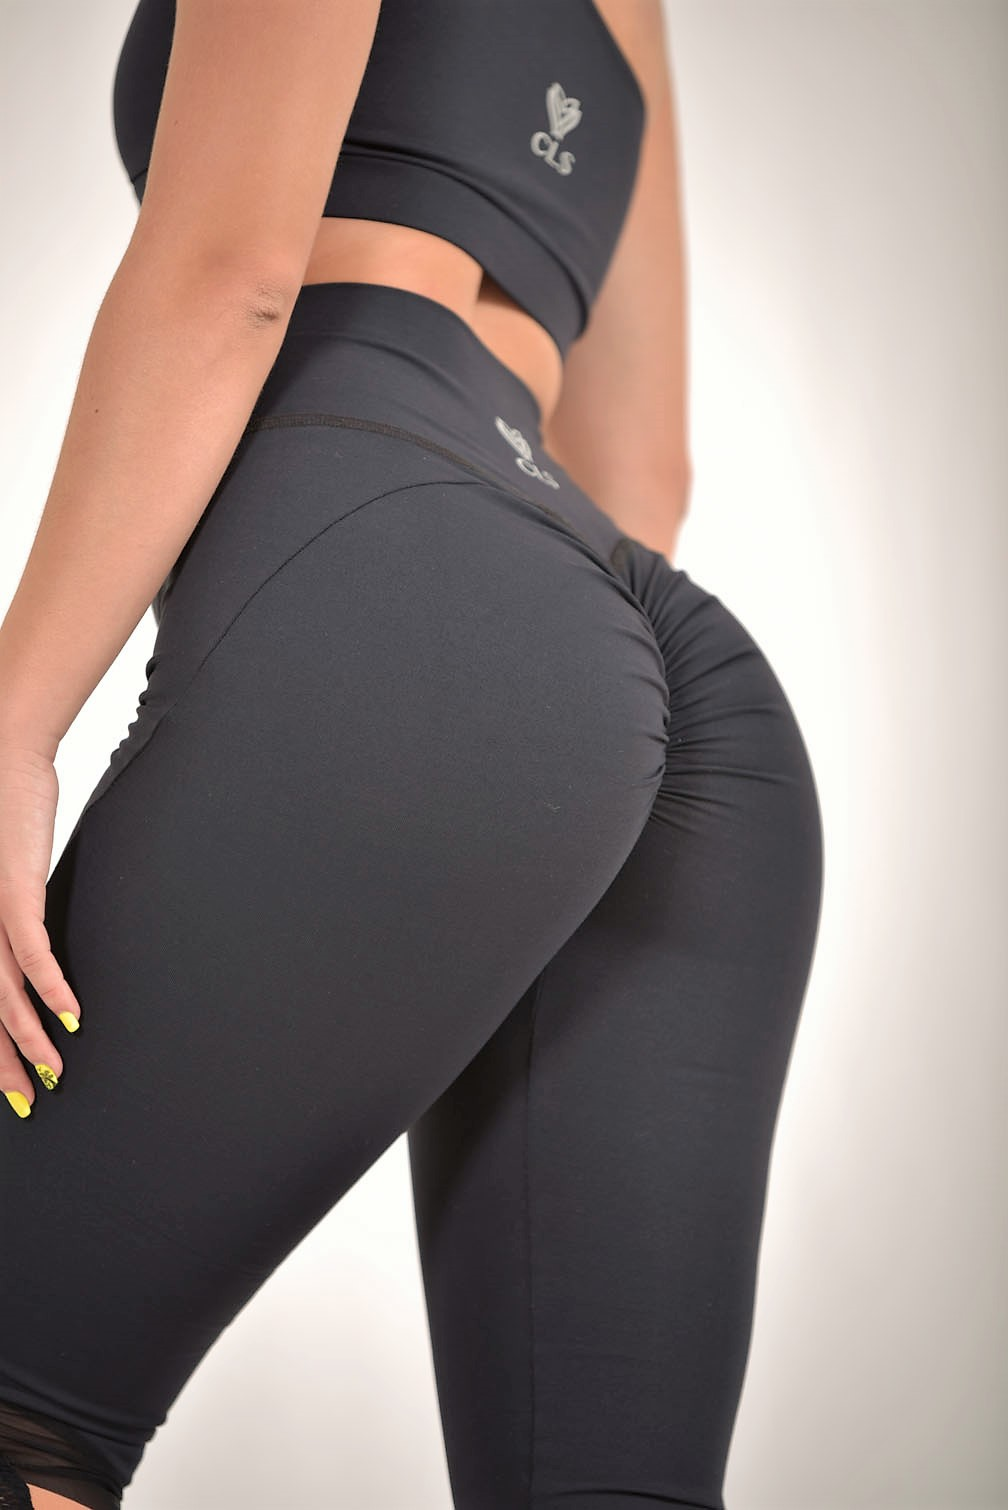 51909b64c267a CLS Sportswear - Leggings, Scrunch Butt, Yoga Pants, Tights